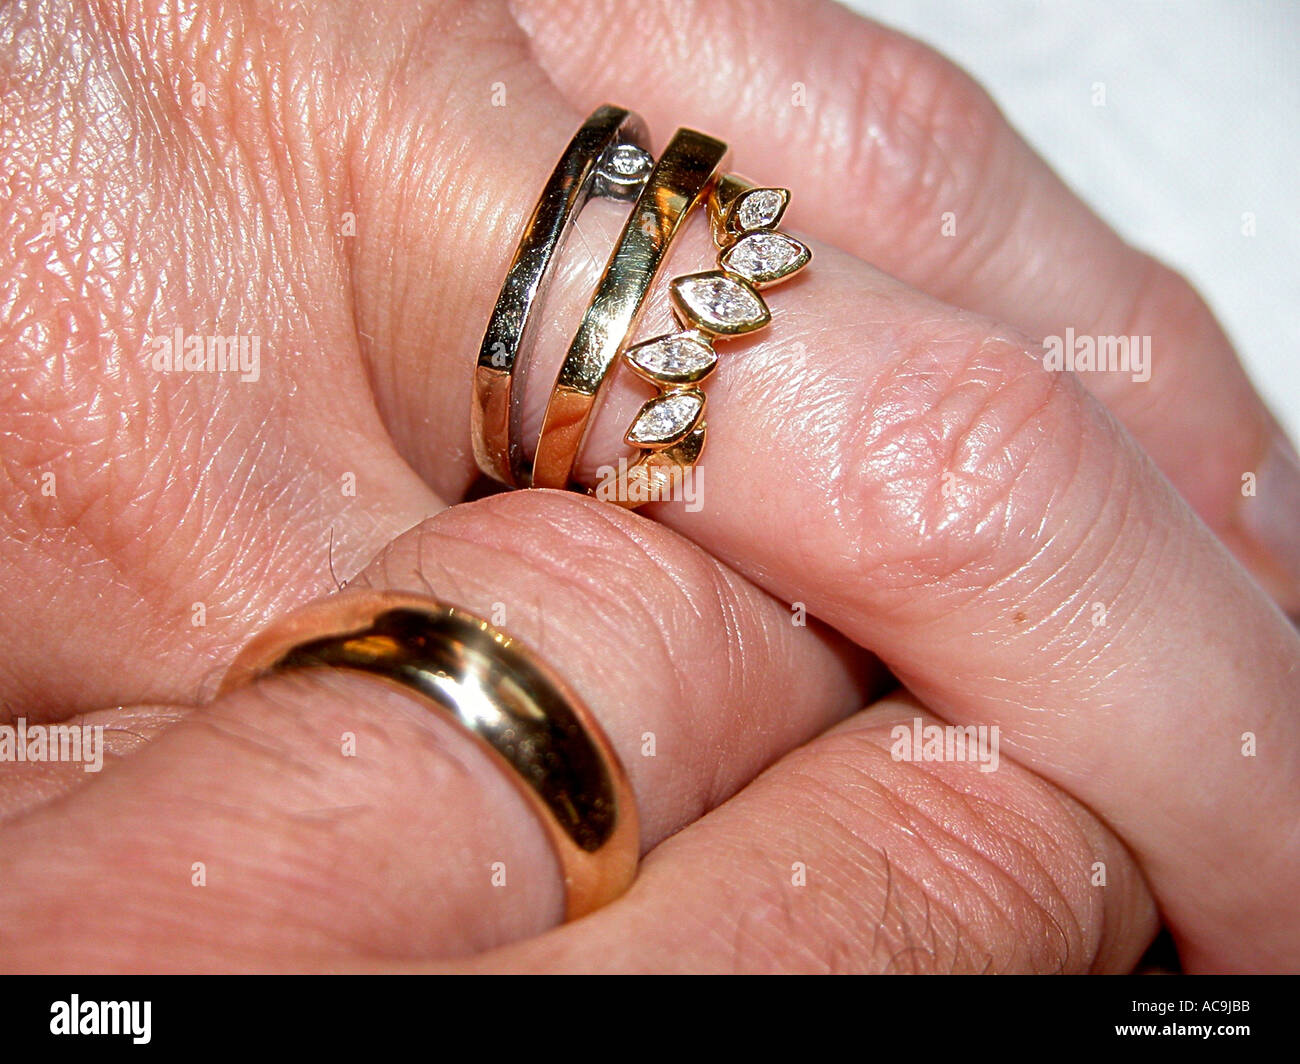 Interlocking Hands Stock Photos & Interlocking Hands Stock Images ...